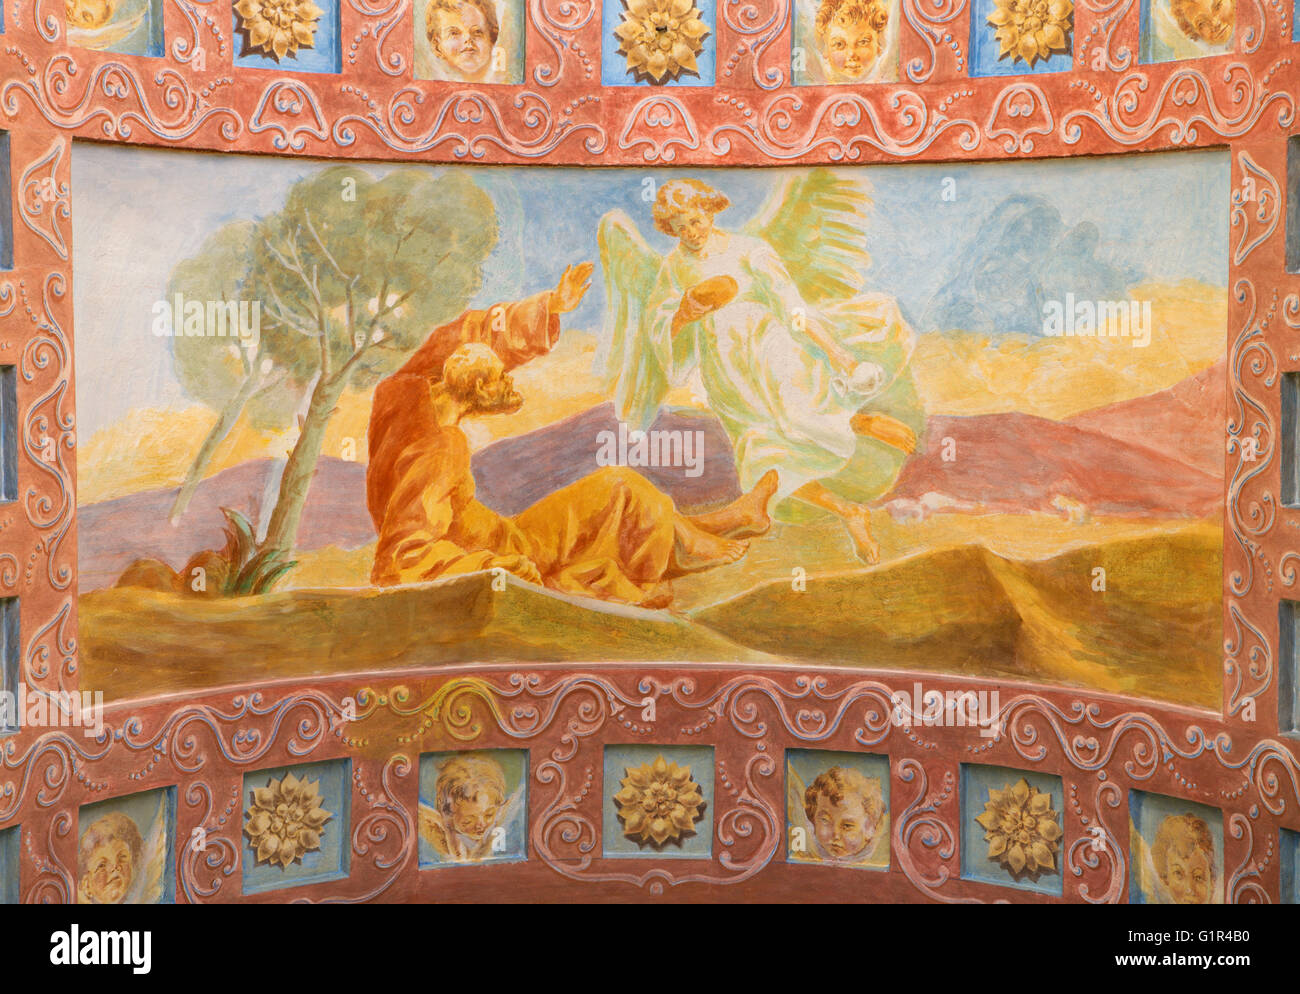 ROME, ITALY - MARCH 10, 2016: The fresco The Prophet Elijah Receiving Bread and Water from an Angel (1957-1965) - Stock Image